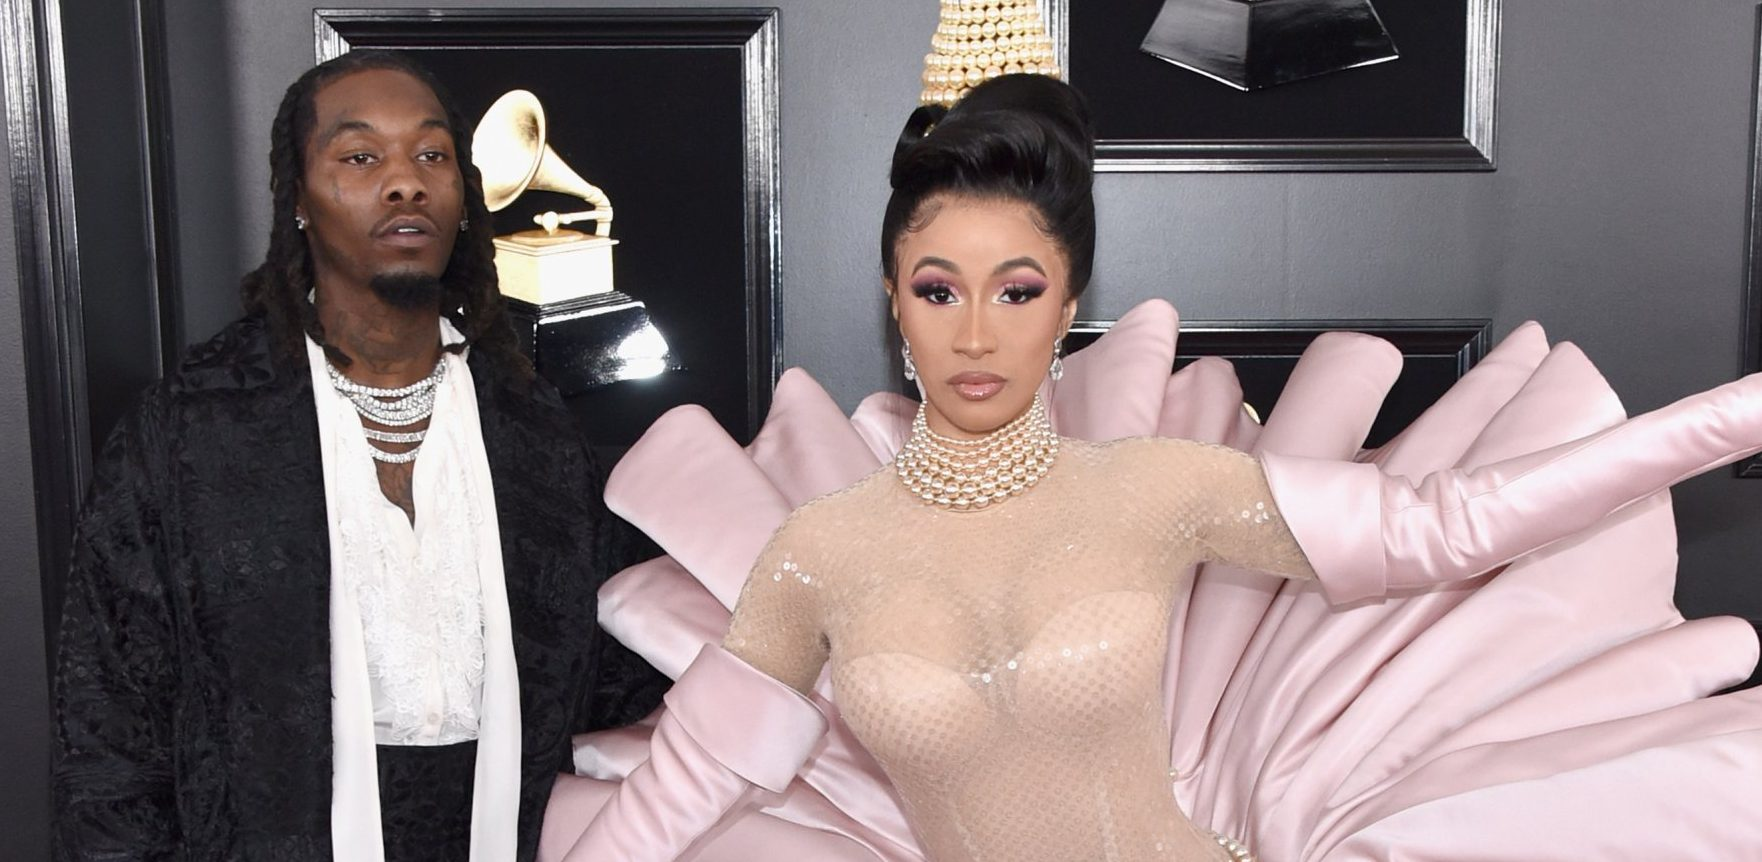 Cardi B struggles to walk on the Grammys 2019 red carpet in extra AF clam dress